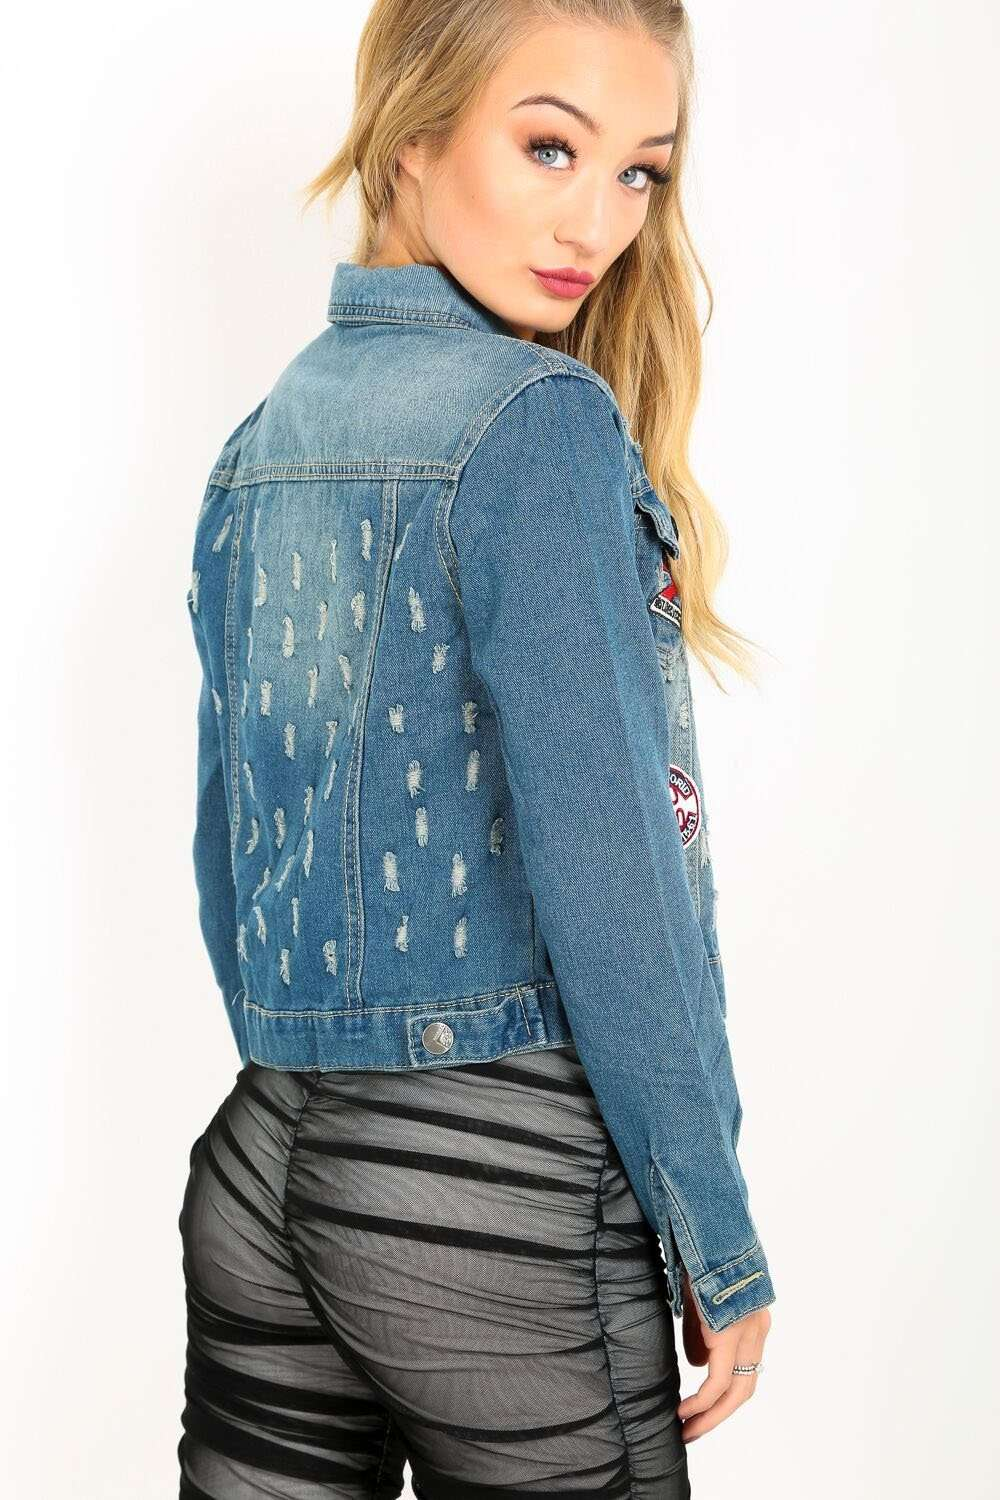 Simona Badged Cropped Ripped Denim Jacket - bejealous-com